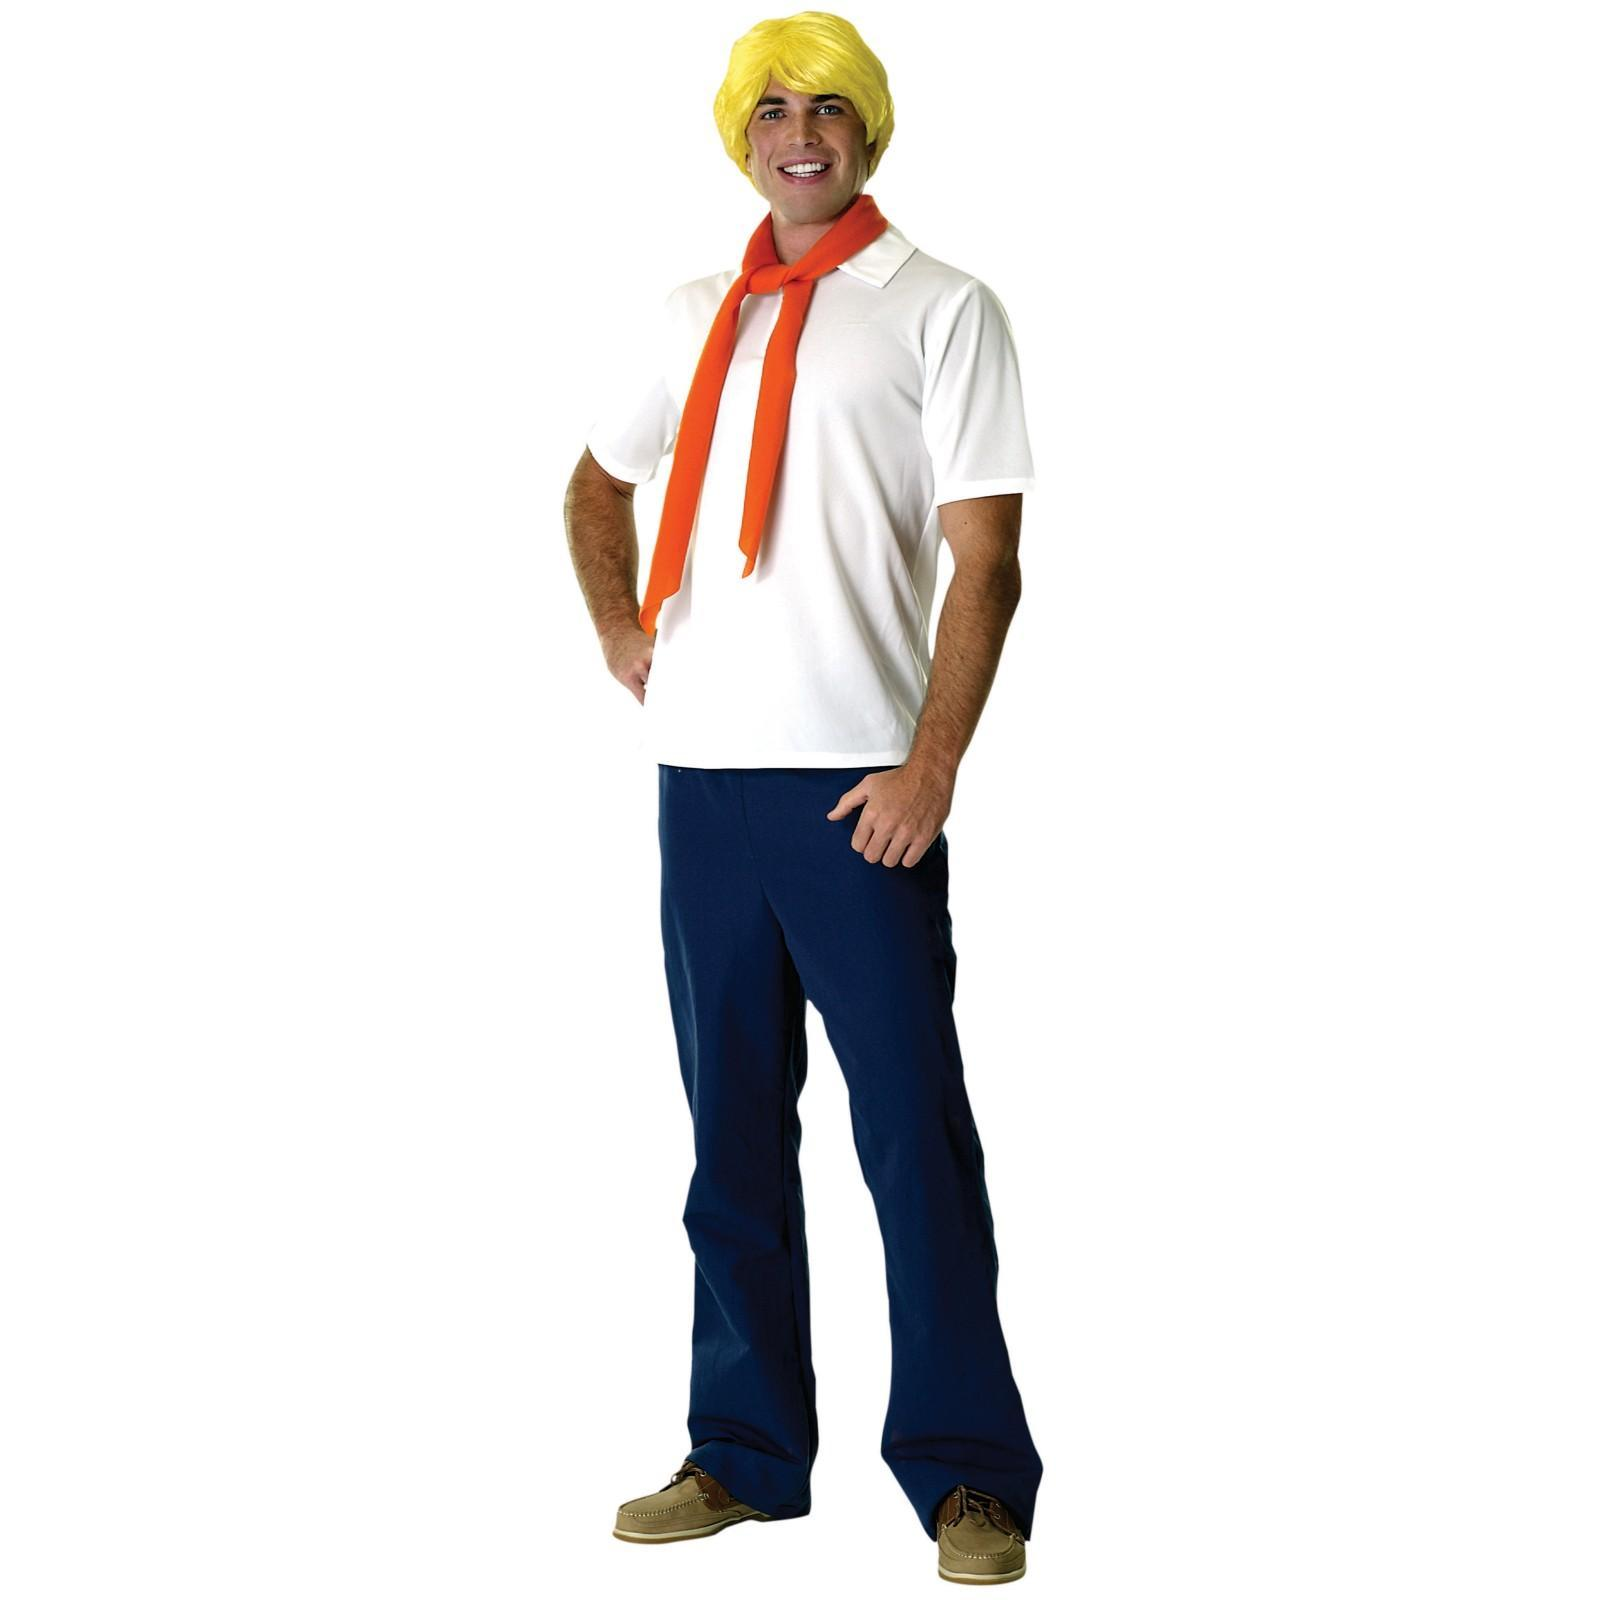 Scooby Doo Fred Costume (Standard Size) image